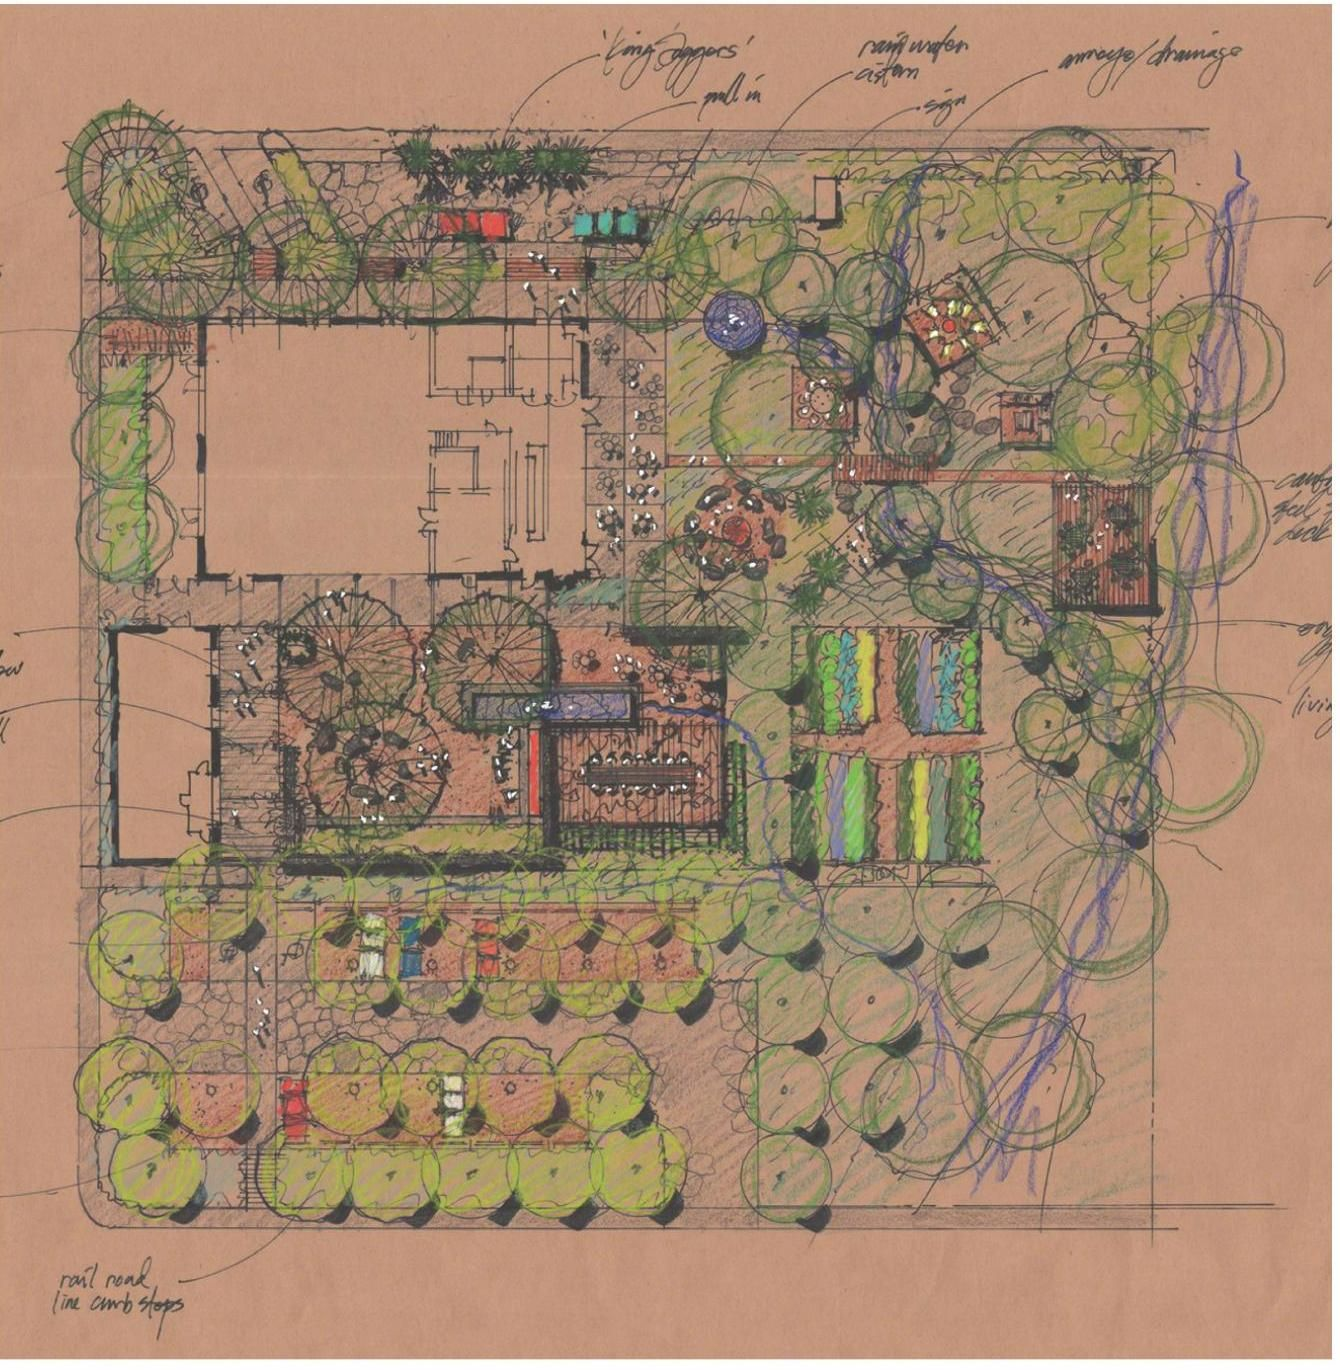 Ten Eyck Landscape Architects | Architects and Landscaping